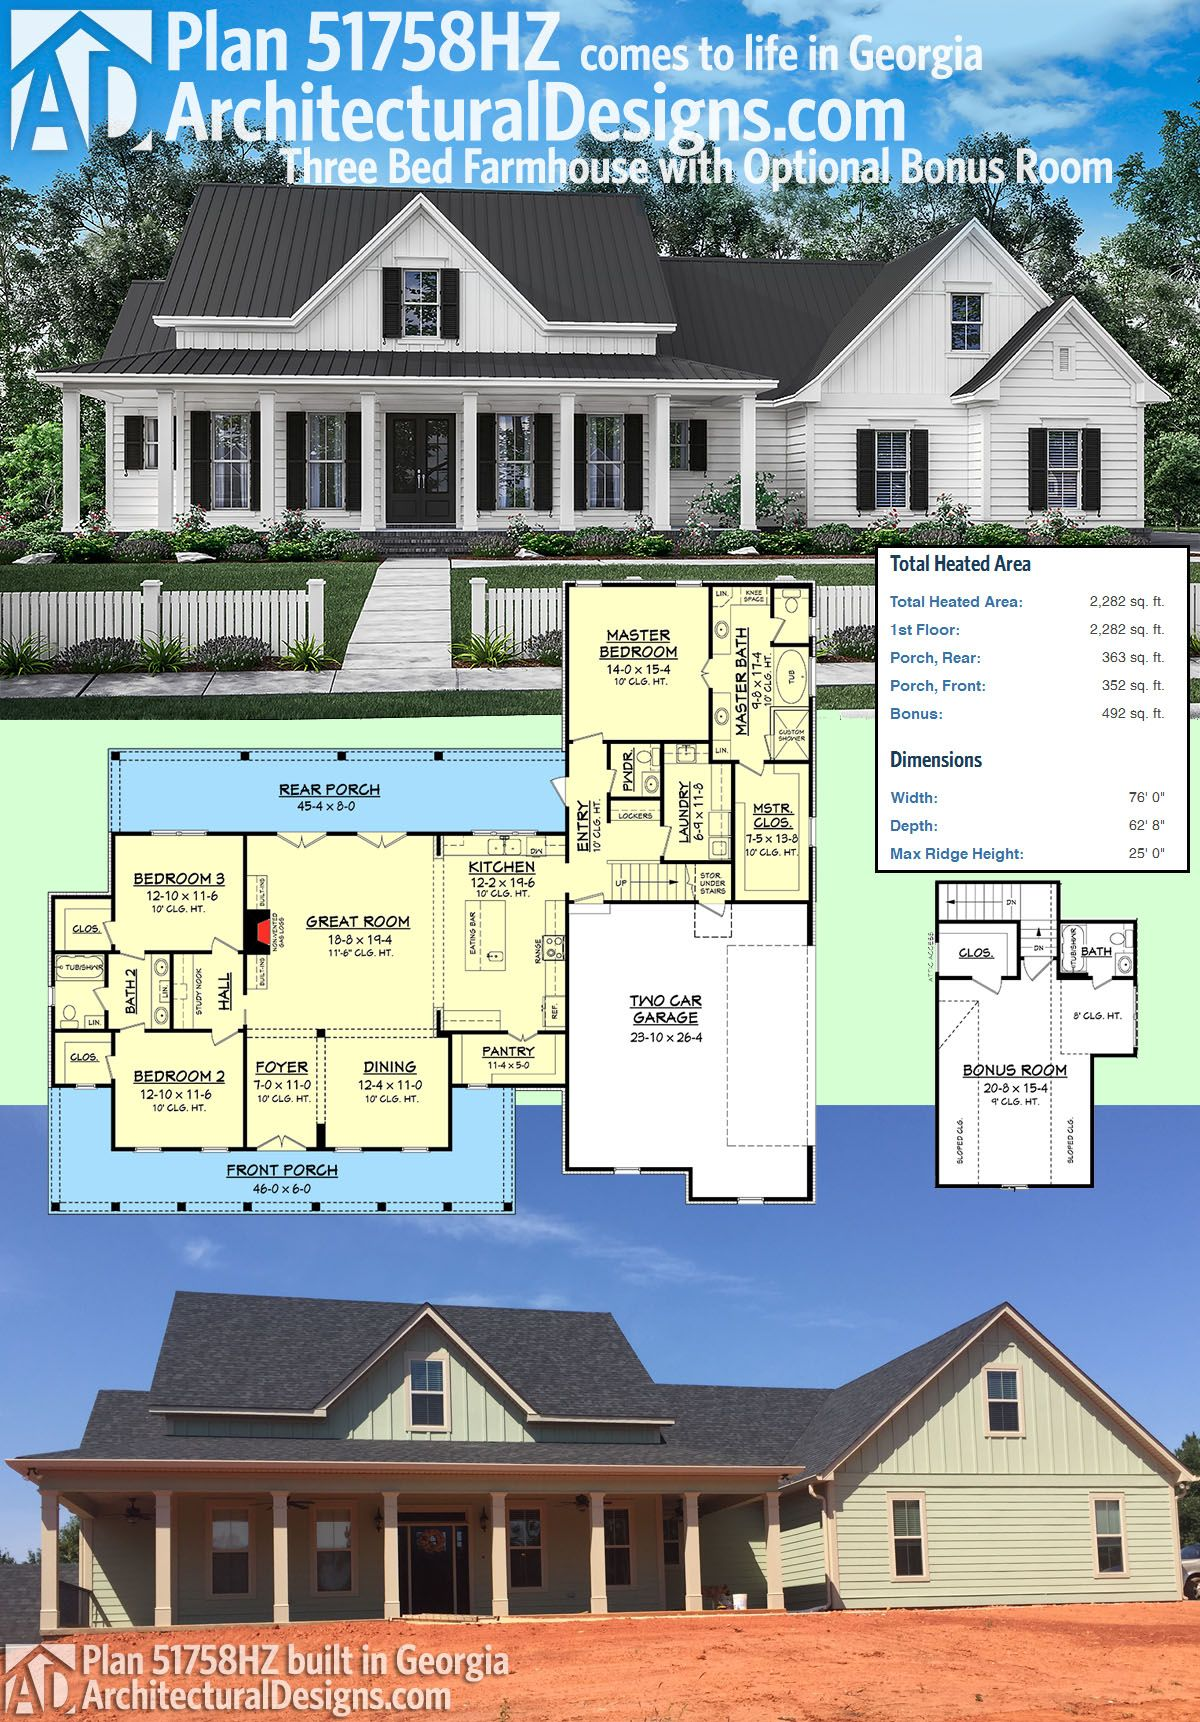 Our Client Built House Plan 51758HZ In Georgia On A Walkout Basement And With Slight Modifications To The GarageReady When You Are